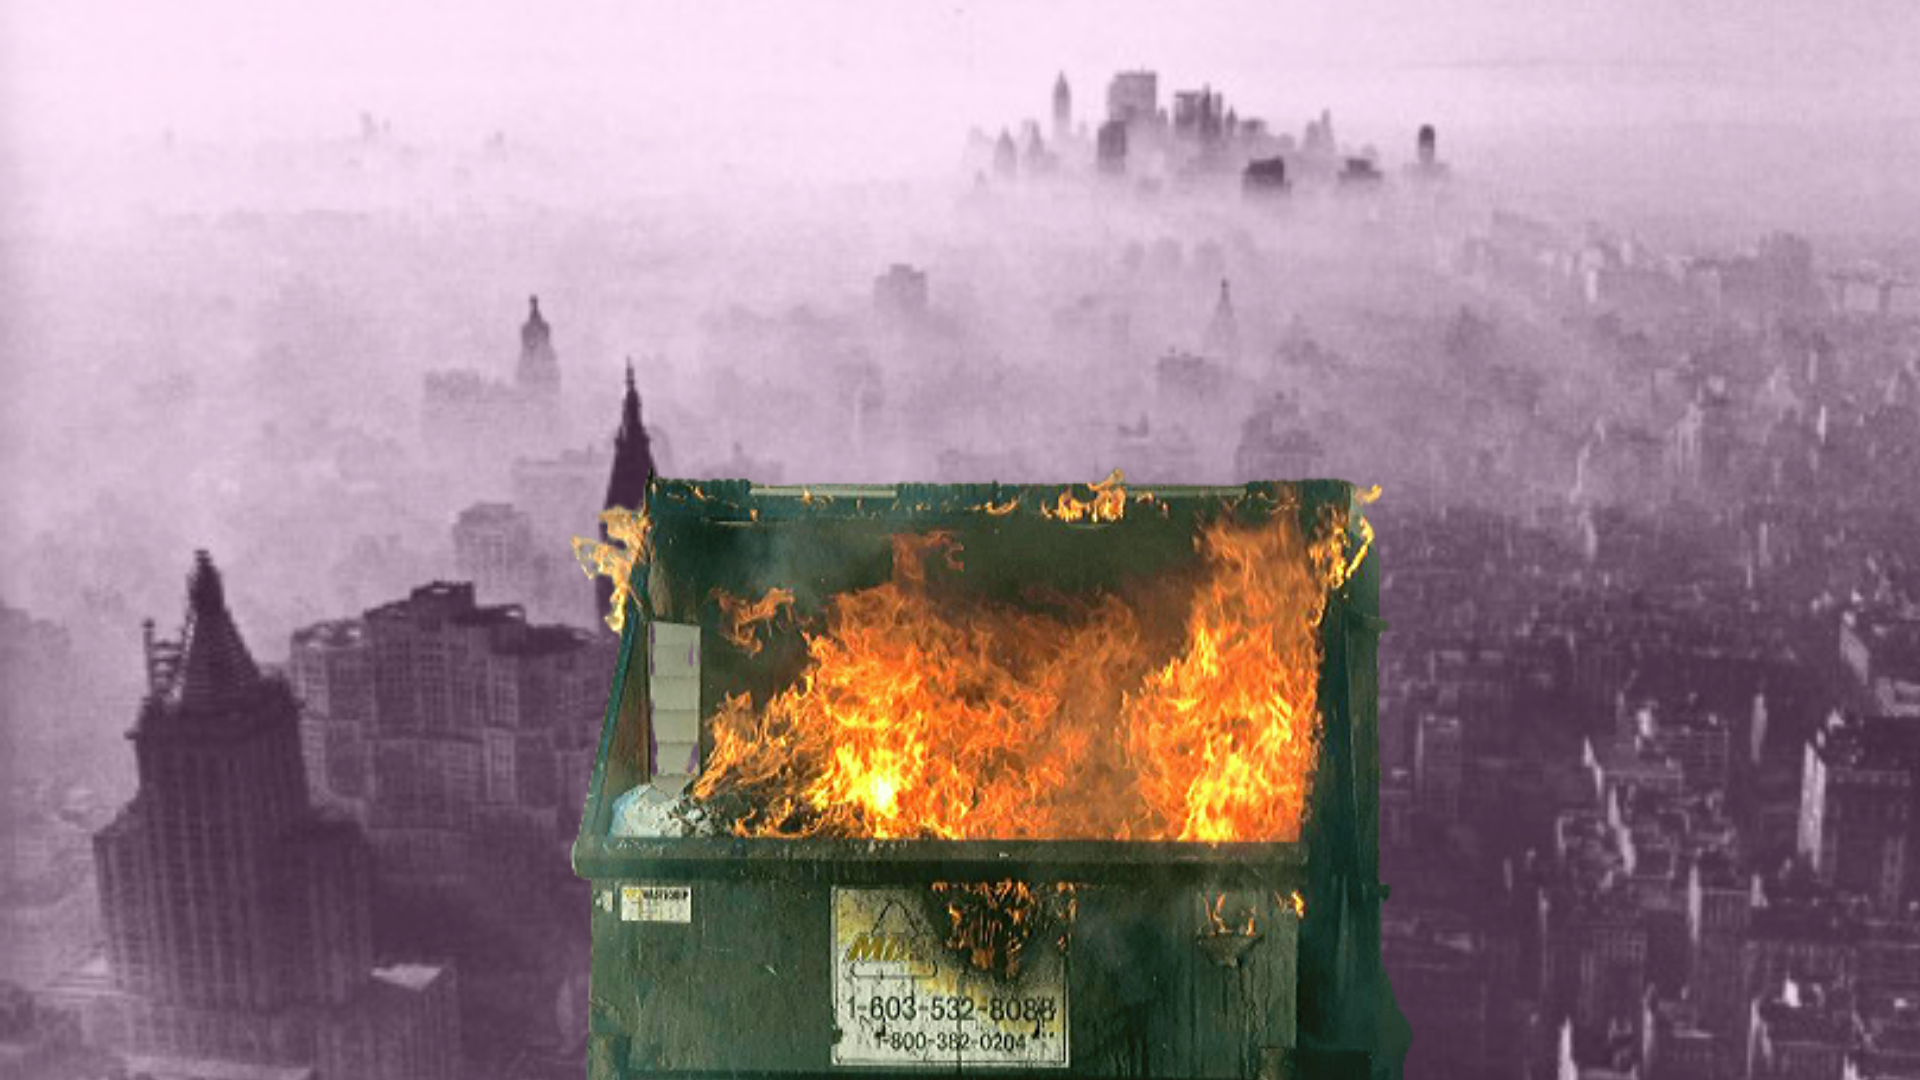 1960's NYC WAS A LITERAL DUMPSTER FIRE